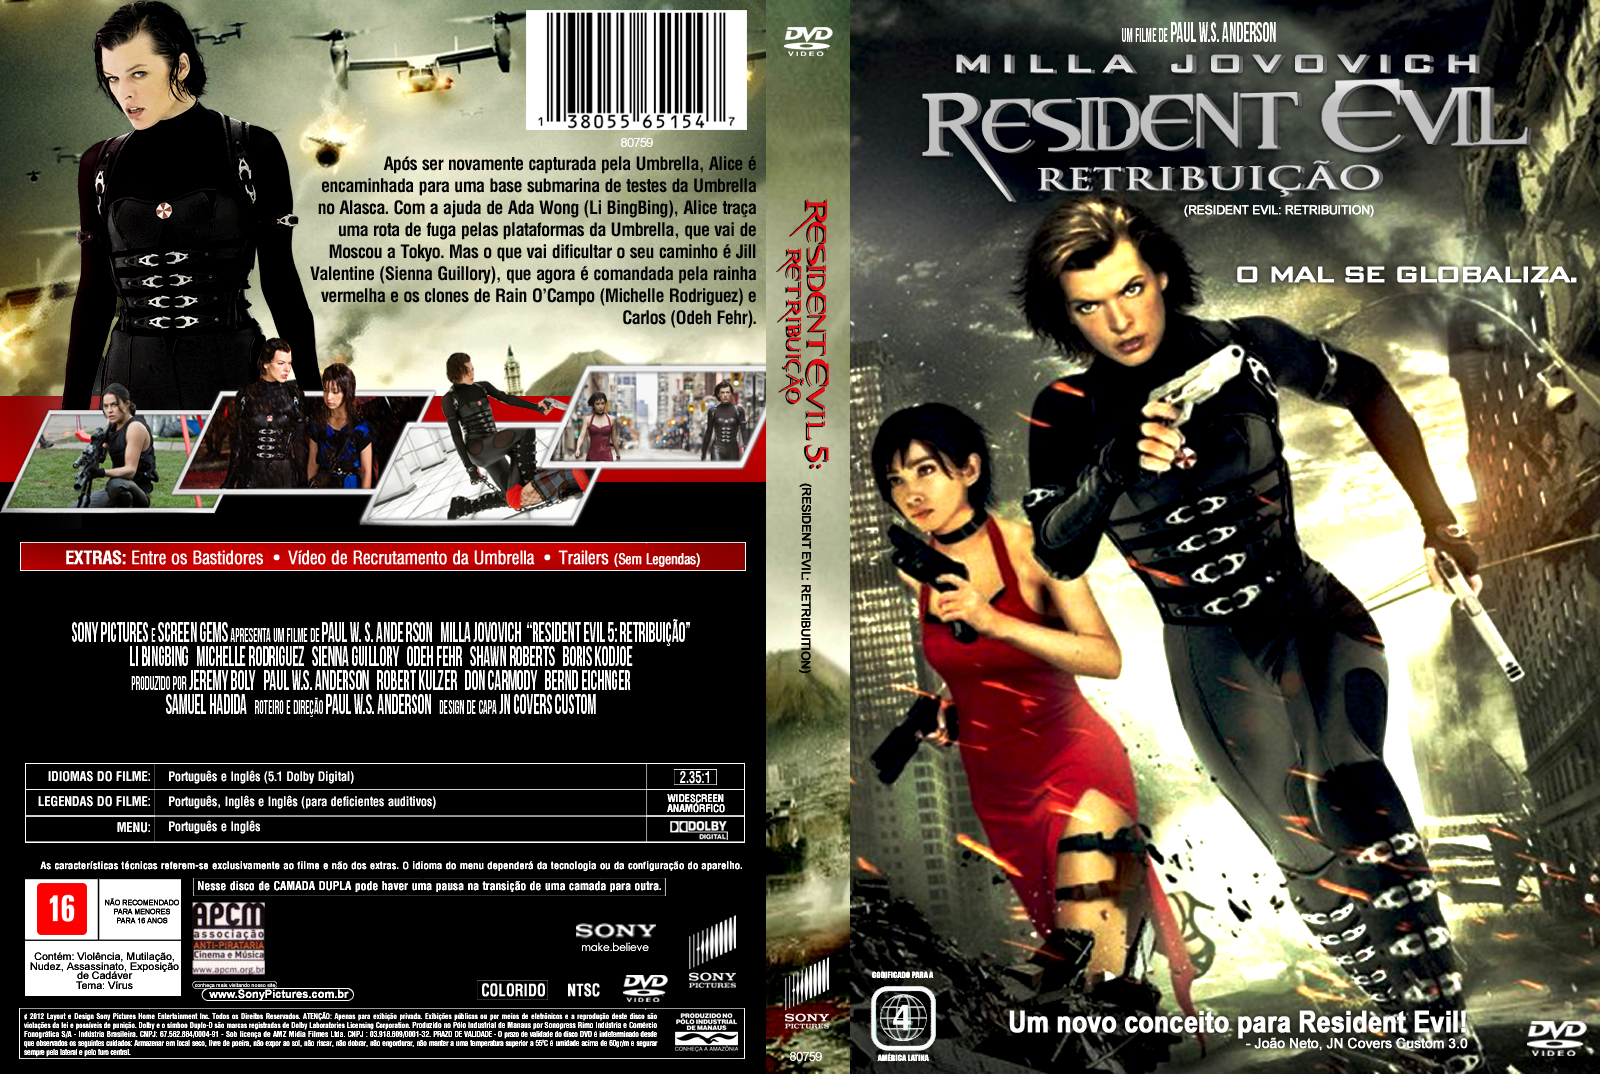 Resident evil movie ost